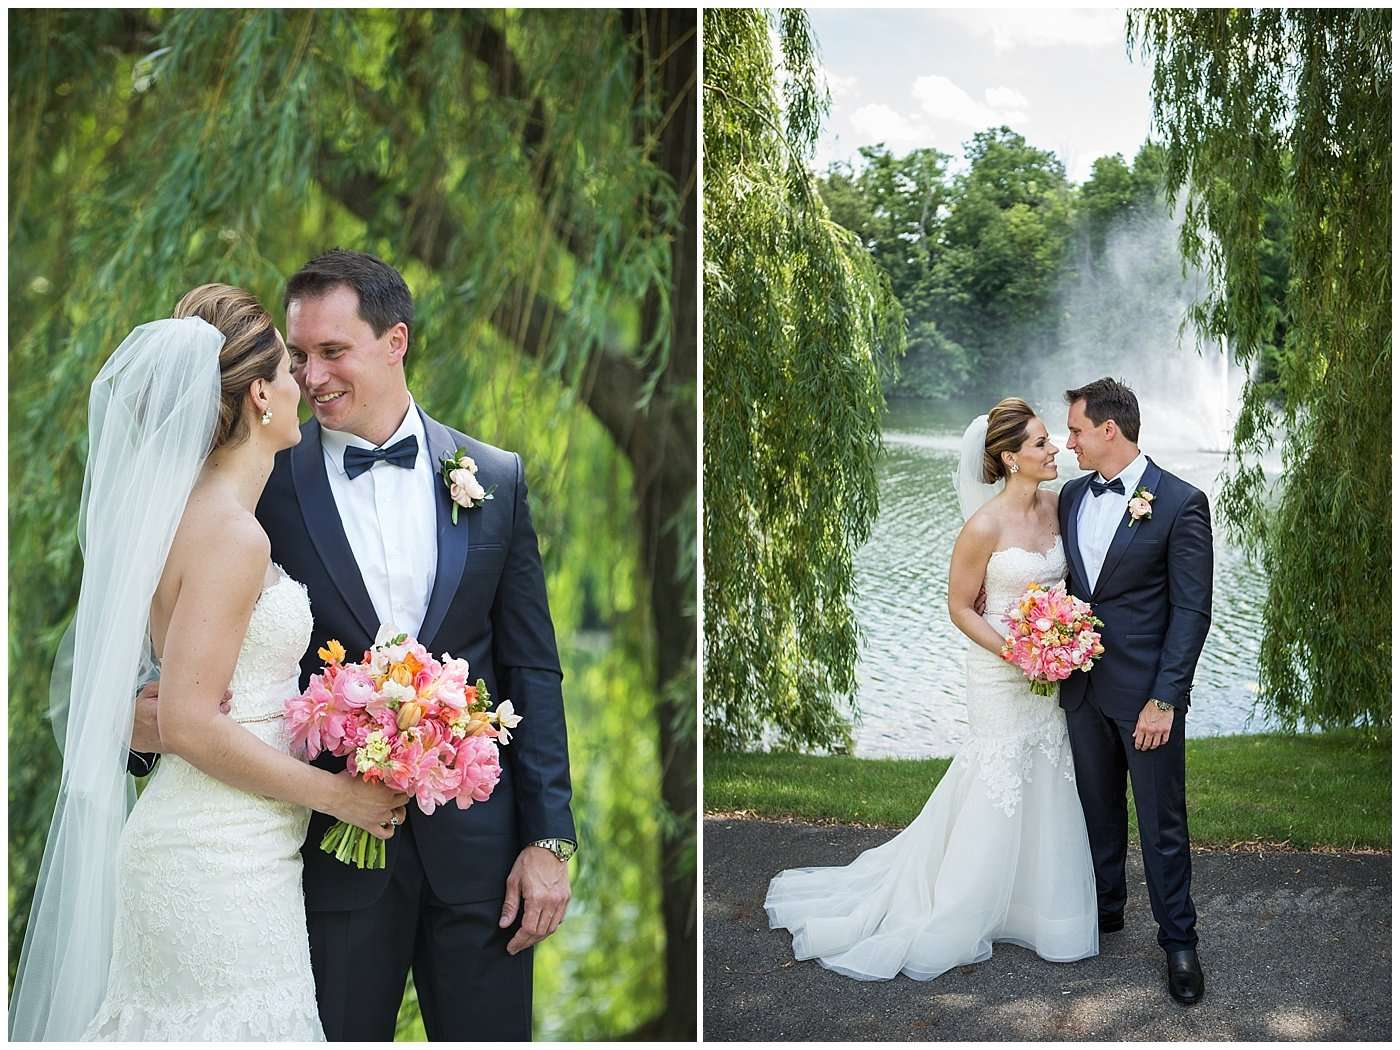 Kim & Lee | A Summer Wedding at Brookside Country Club 54